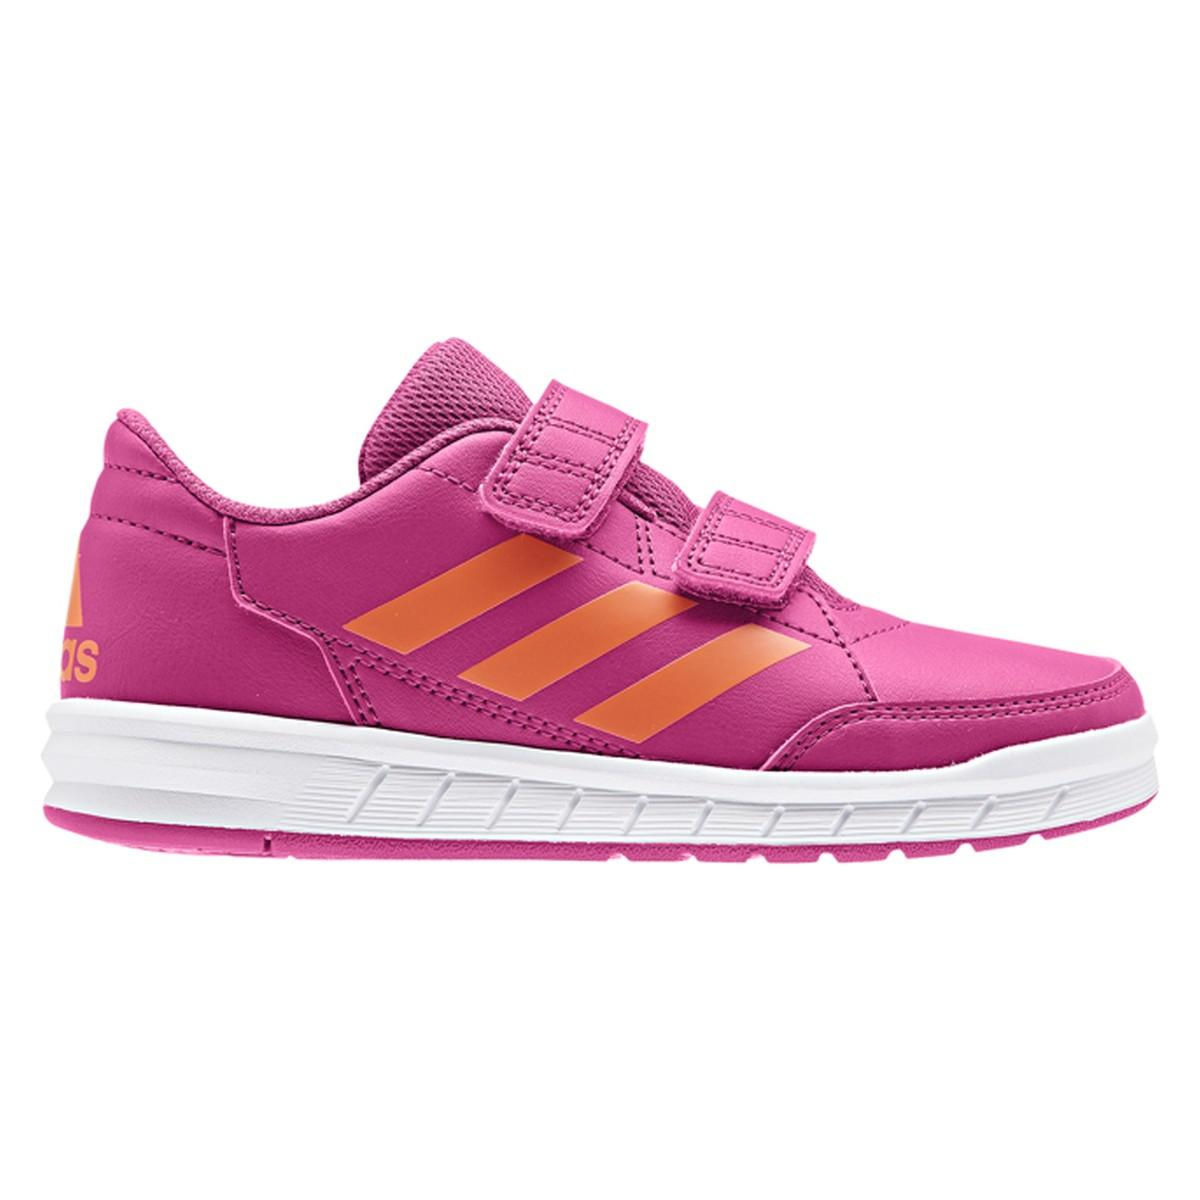 Adidas Baby Alta CF Shoes - Valley Sports UK